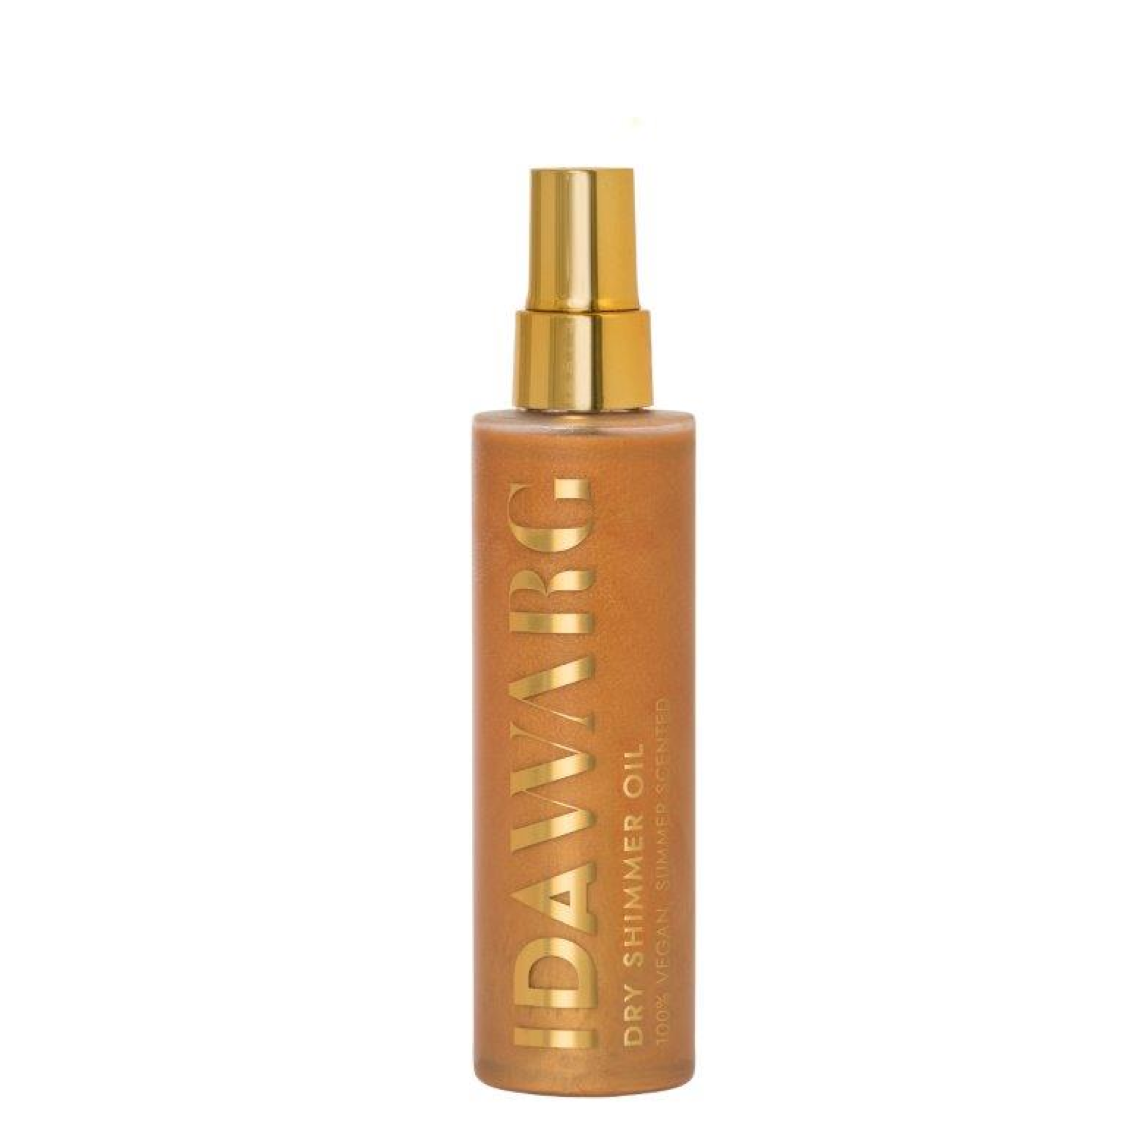 Ida Warg Dry Shimmer Oil 100ml - Hairsale.se